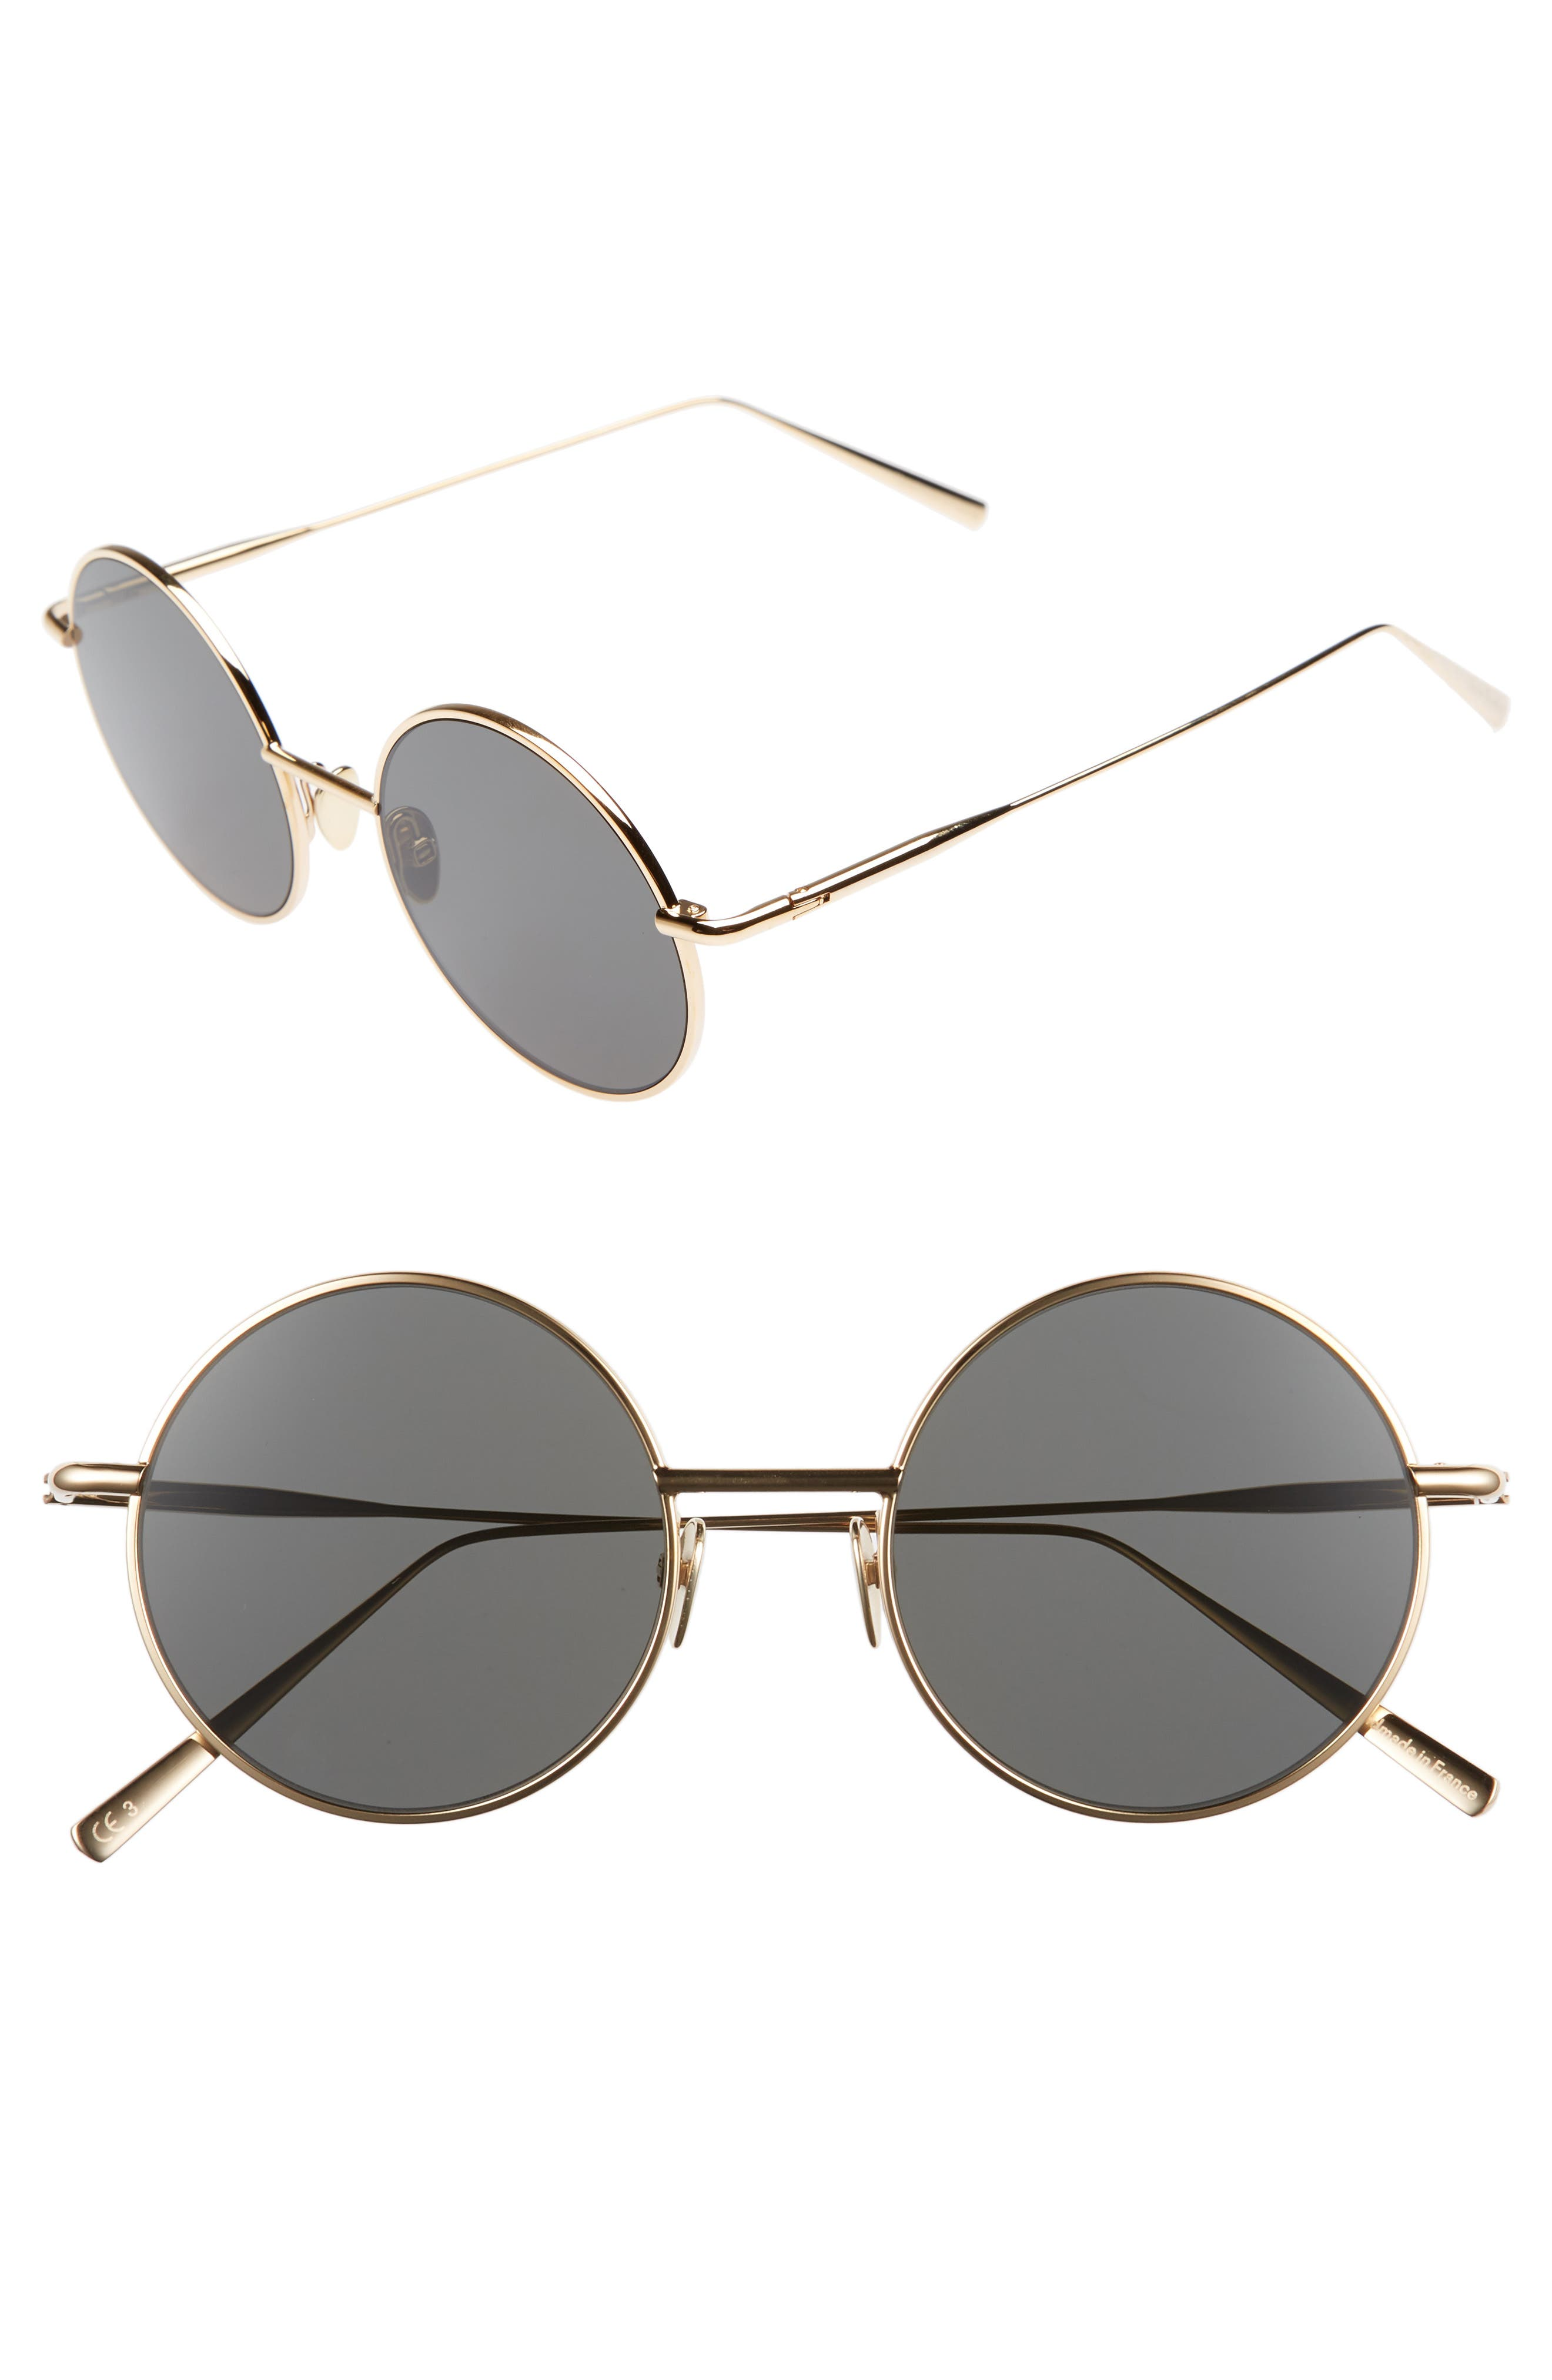 Acne Studios Scientist 50mm Round Sunglasses